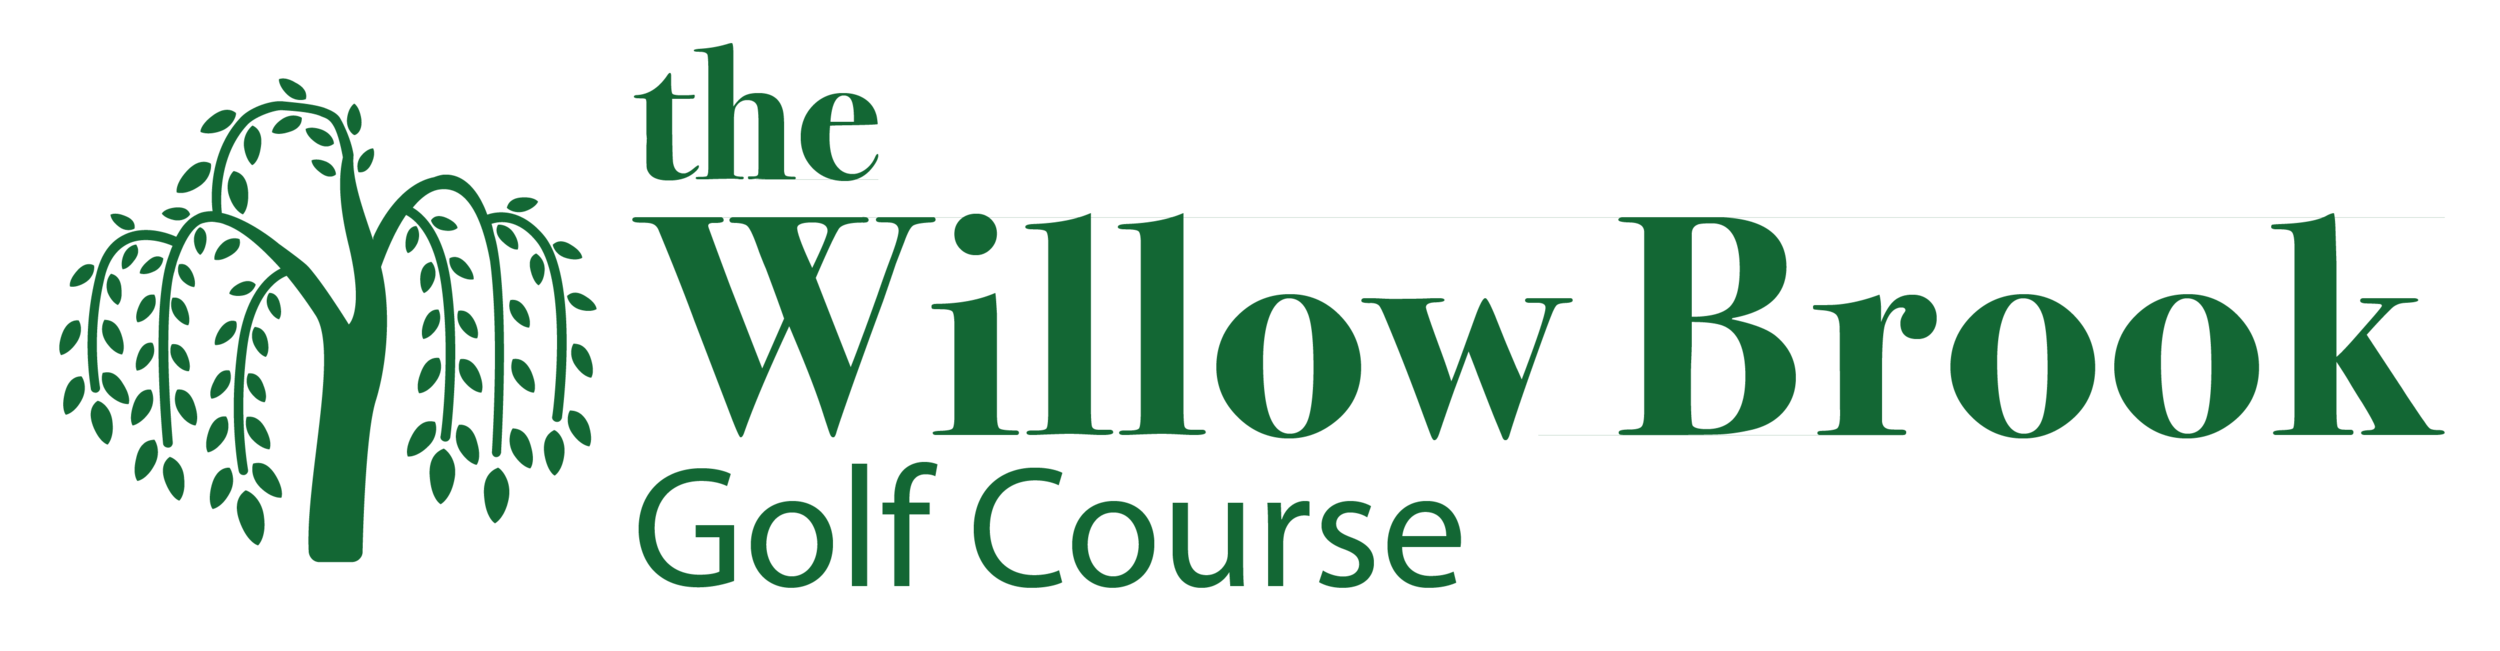 Willow Brook_Golf Club Logo.png